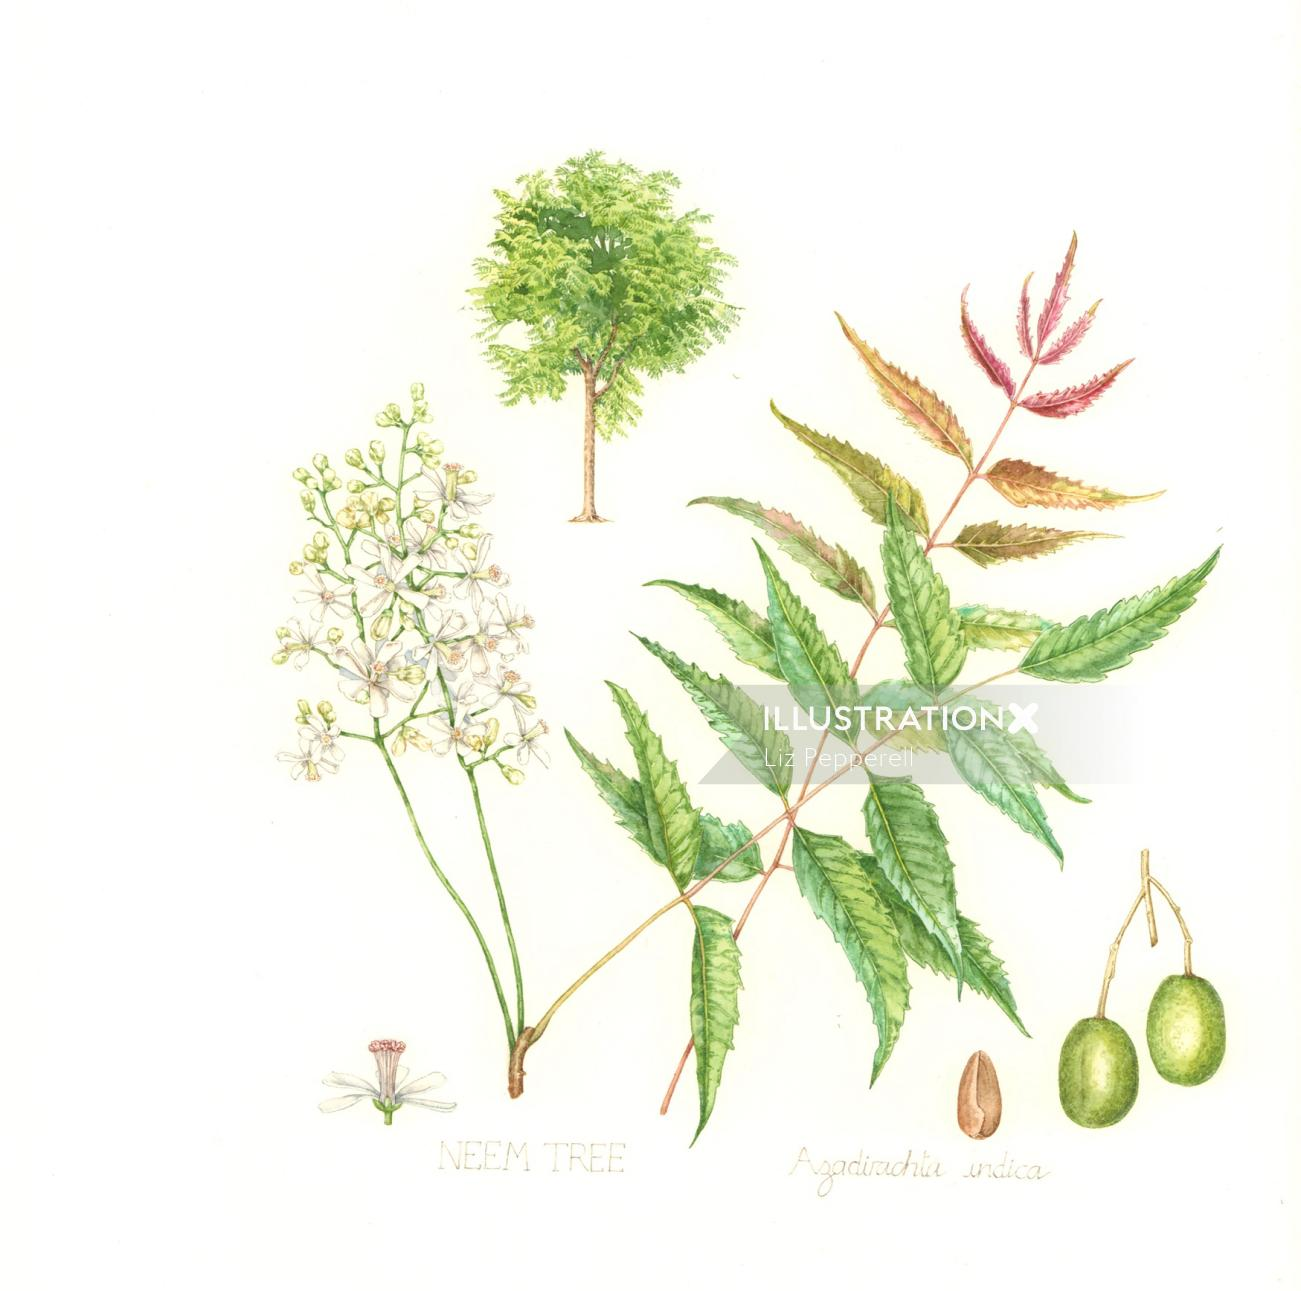 Illustration By Liz Pepperell Neem tree in a 3 gallon container. illustration by liz pepperell